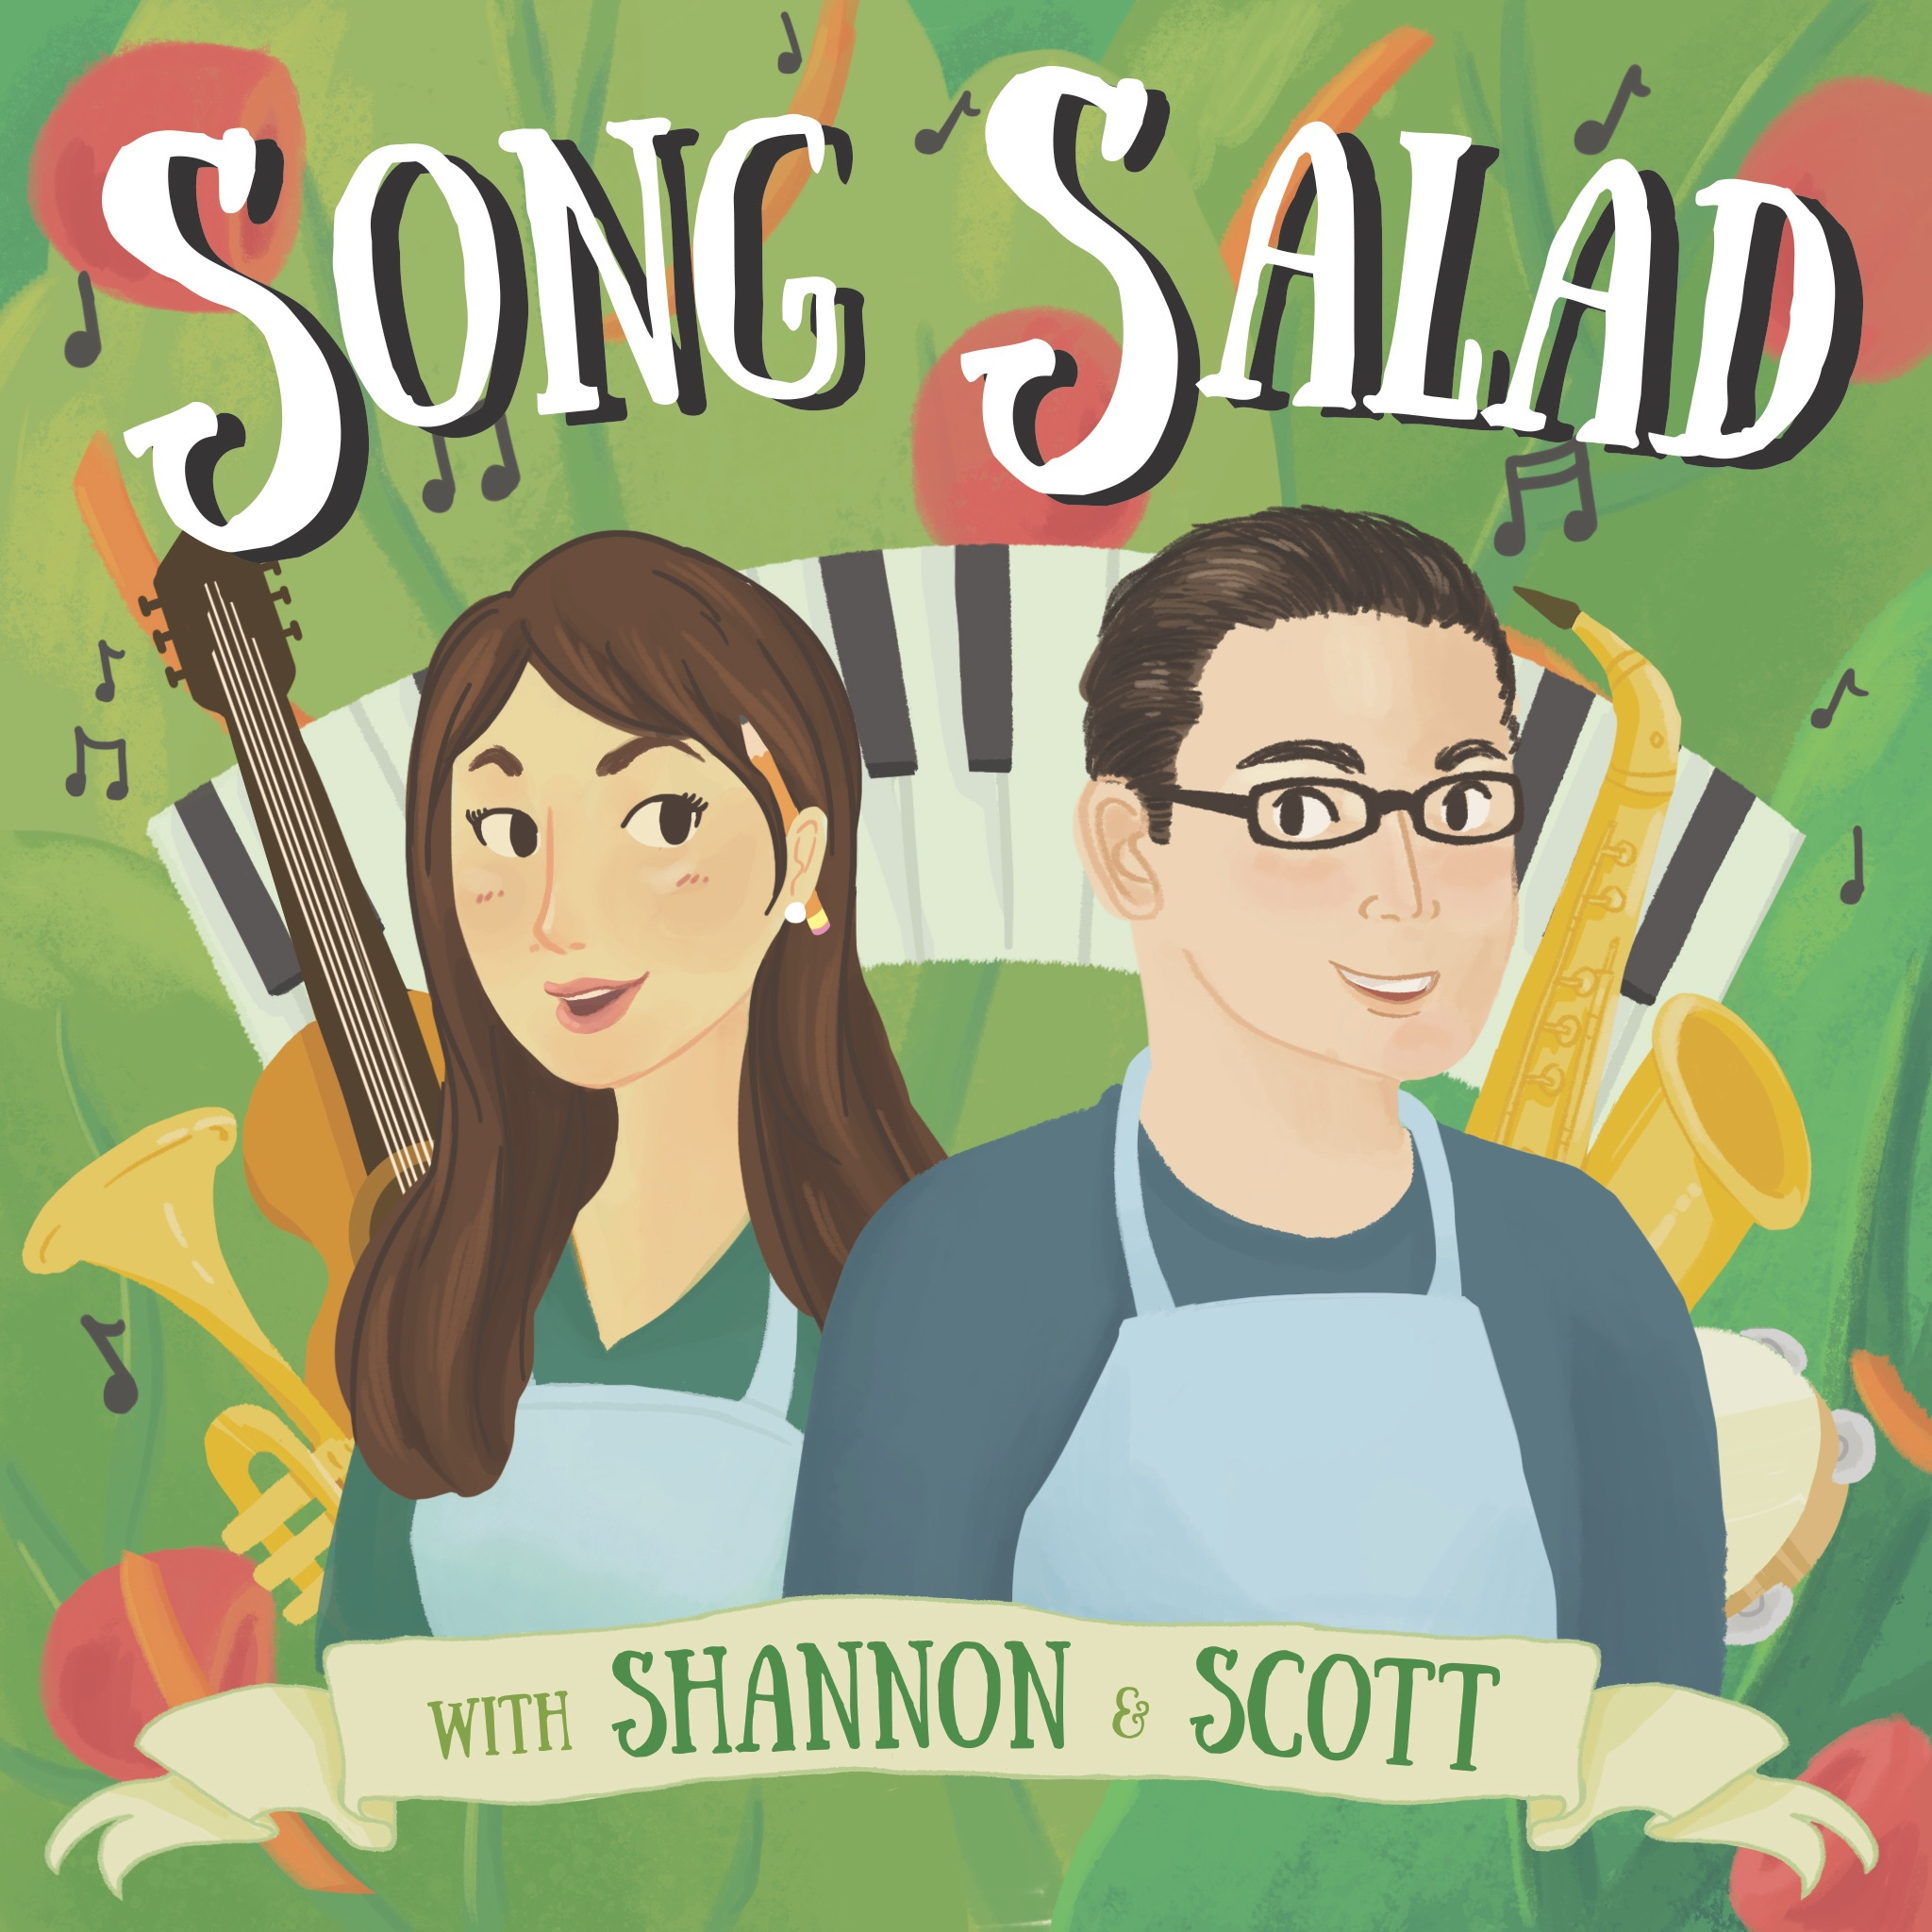 Song Salad Podcast